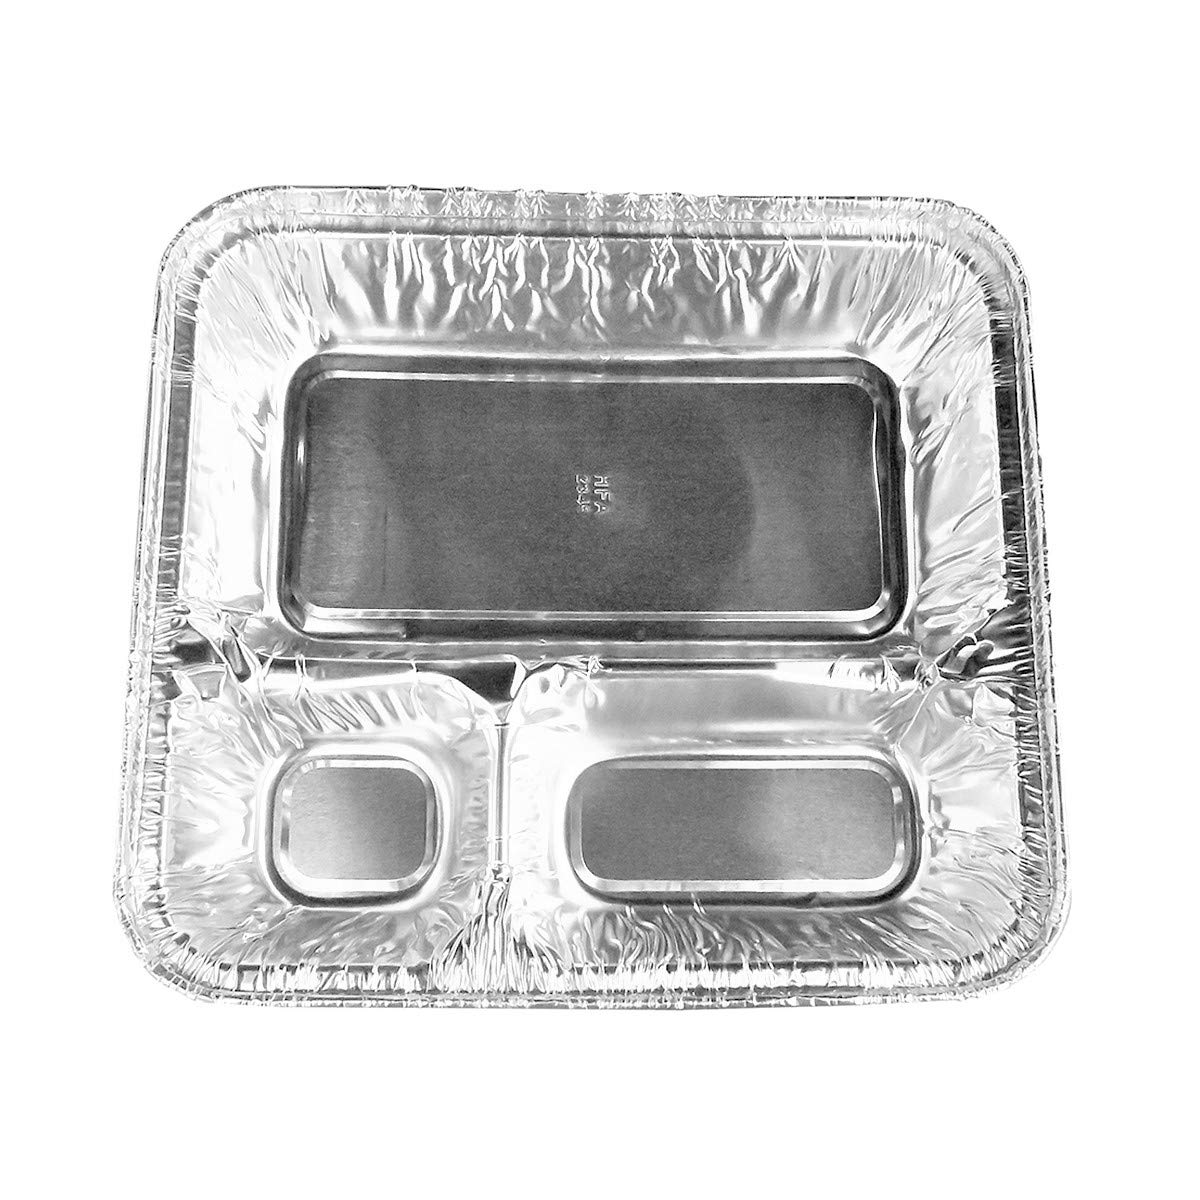 Disposable Aluminum X-Large 3 Compartment T.V. Dinner/Food Storage Trays by Handi-Foil (100)